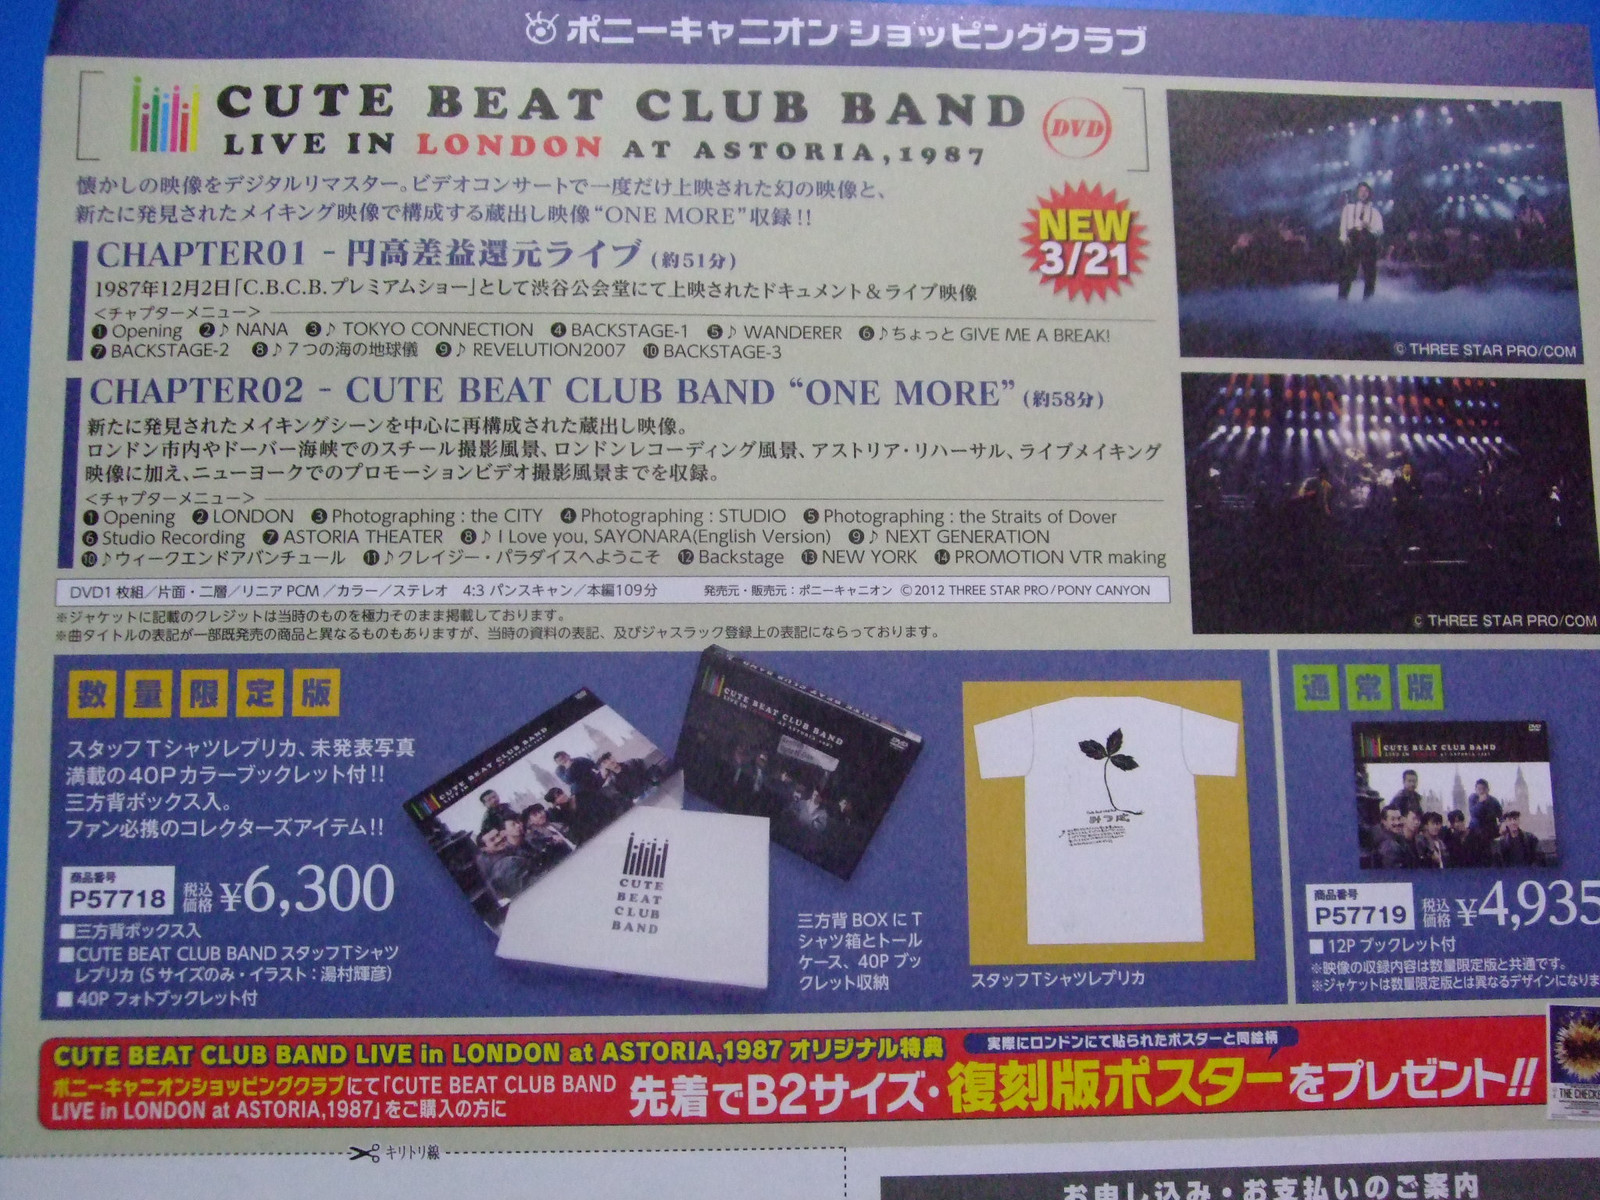 CUTE BEAT CLUB BAND LIVE in LO...